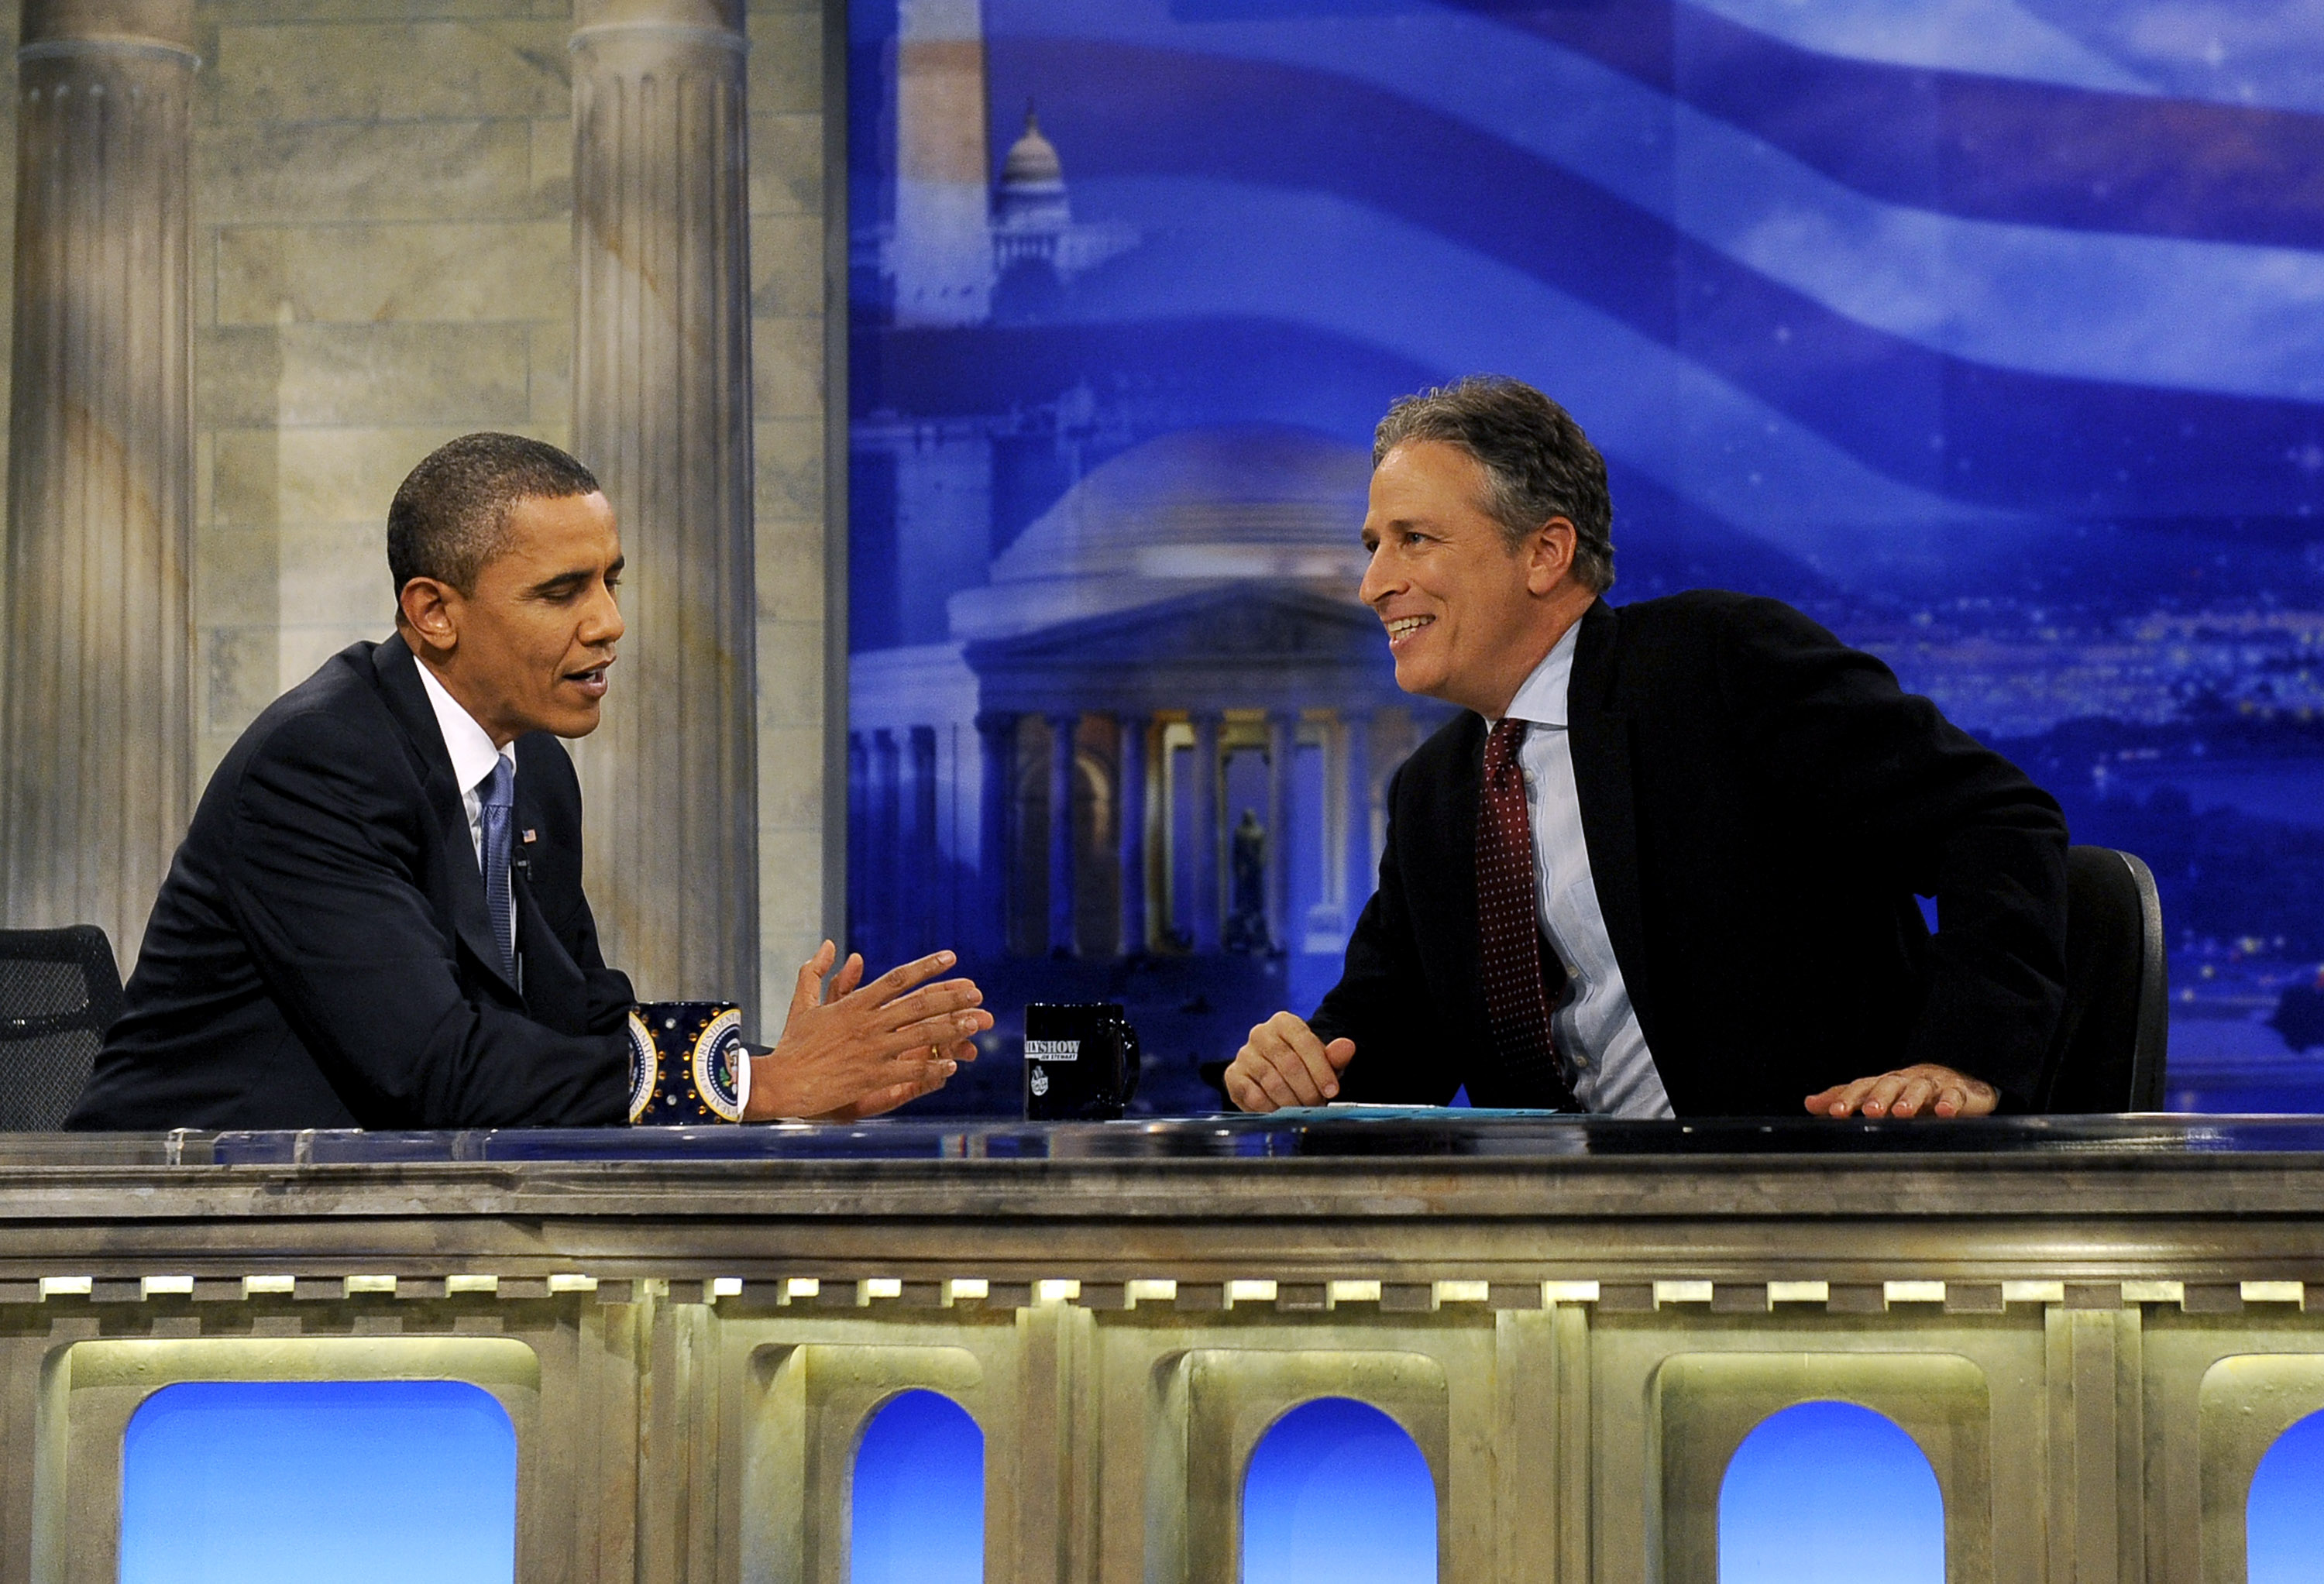 President Barack Obama chats with Daily Show host Jon Stewart during a commercial break in taping on October 27, 2010 in Washington, D.C.